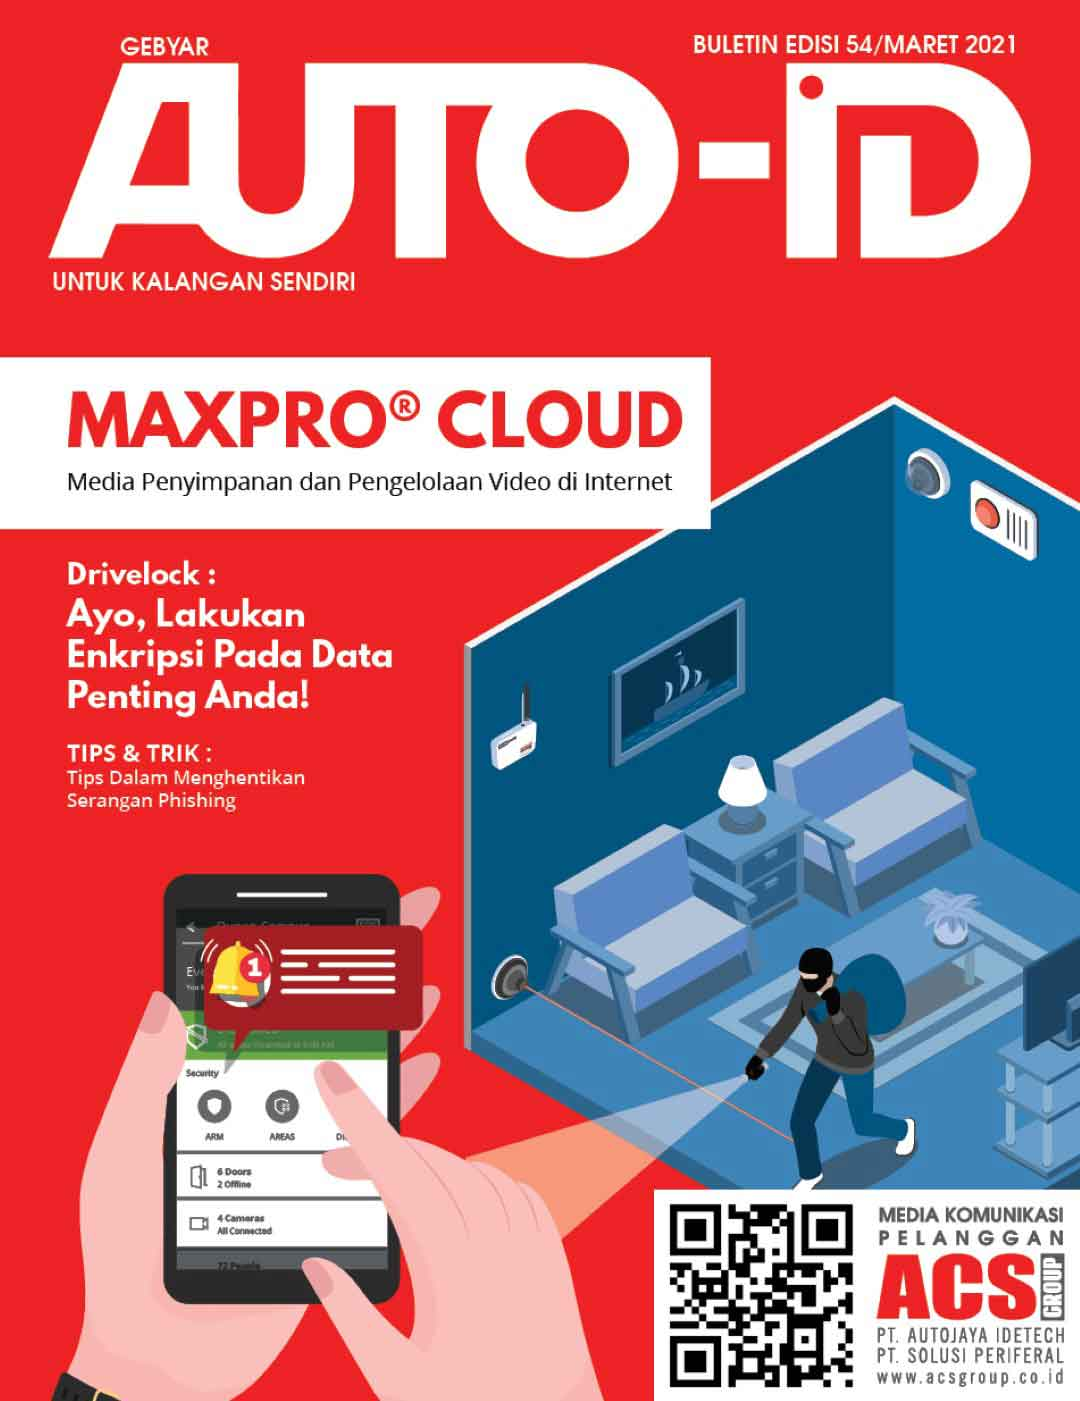 (English) Gebyar Auto-ID Vol 54 Maxpro Cloud